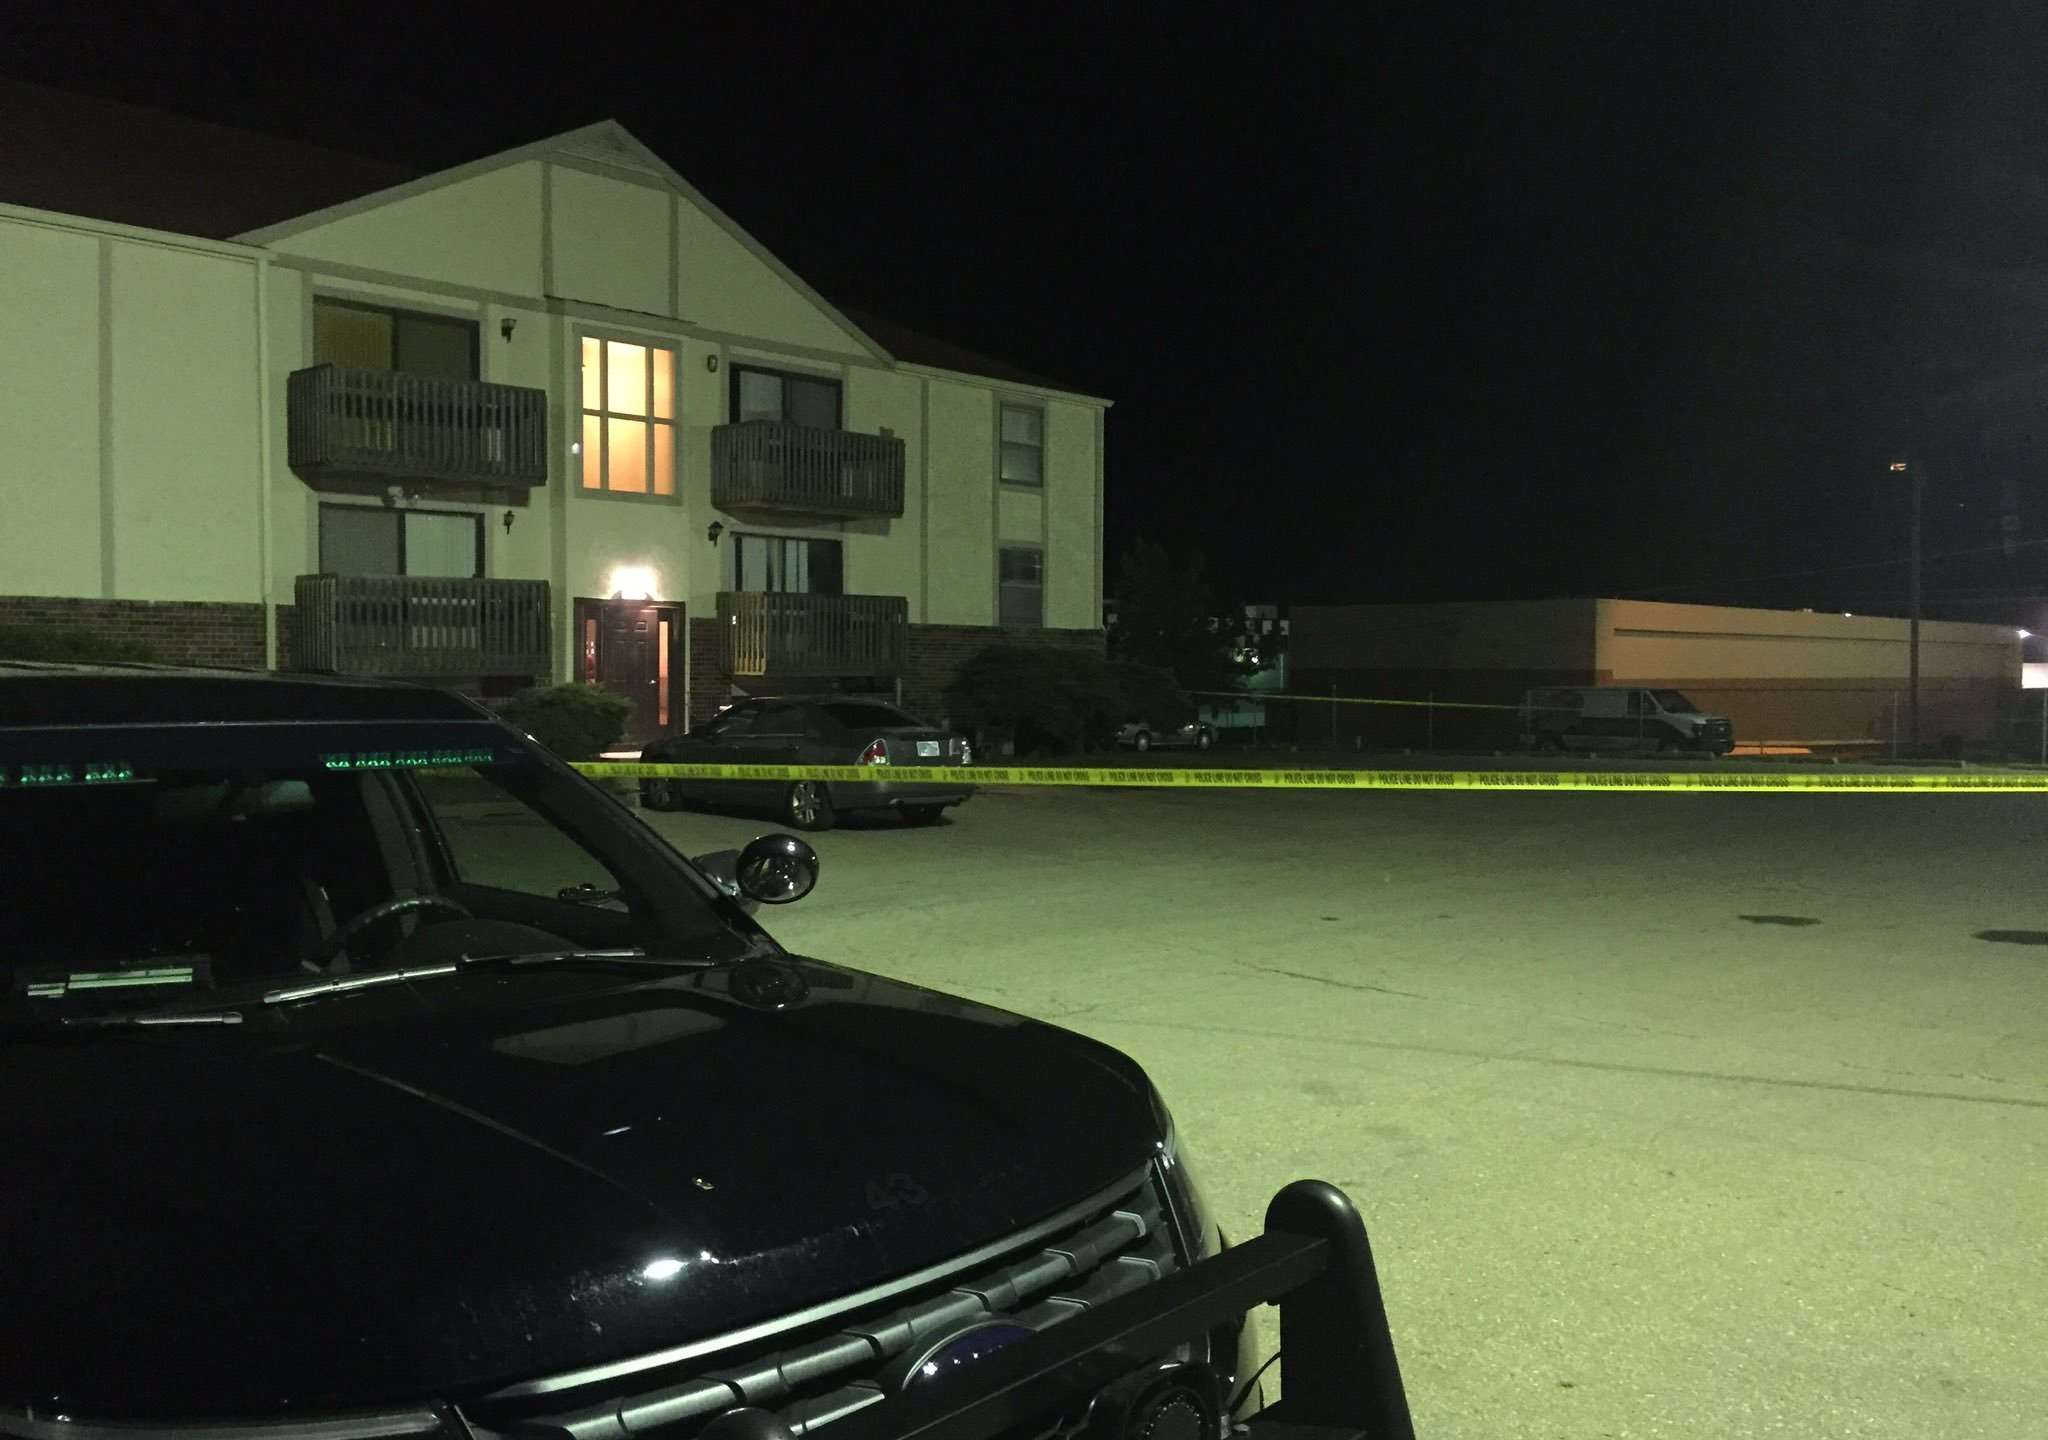 Fairlawn Green Apartments Double Homicide_213546